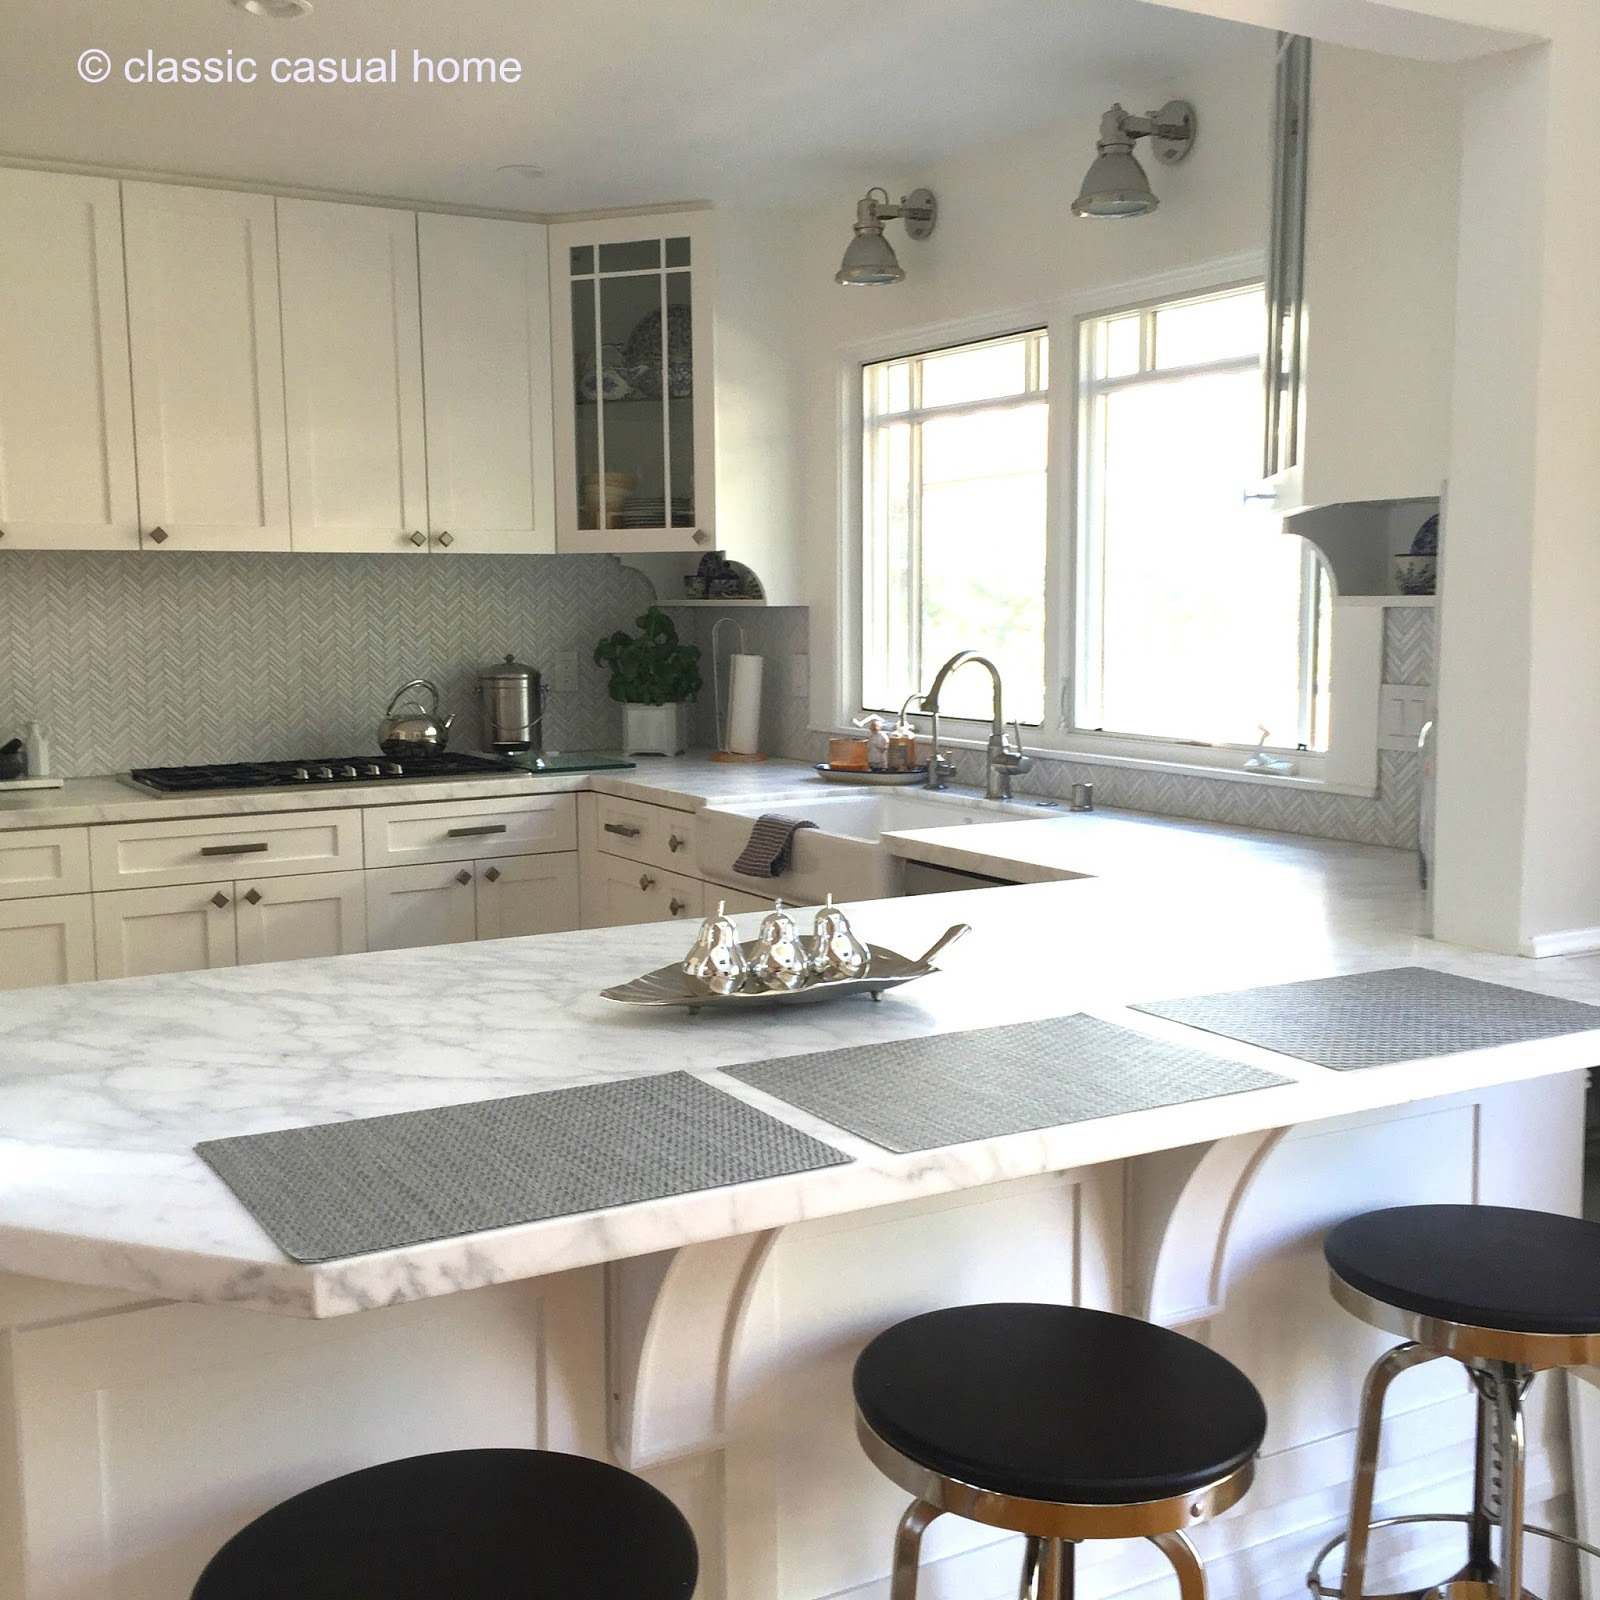 Before And After Merging Two Rooms Has Created A Super: Classic • Casual • Home: Fresh White Kitchen Makeover